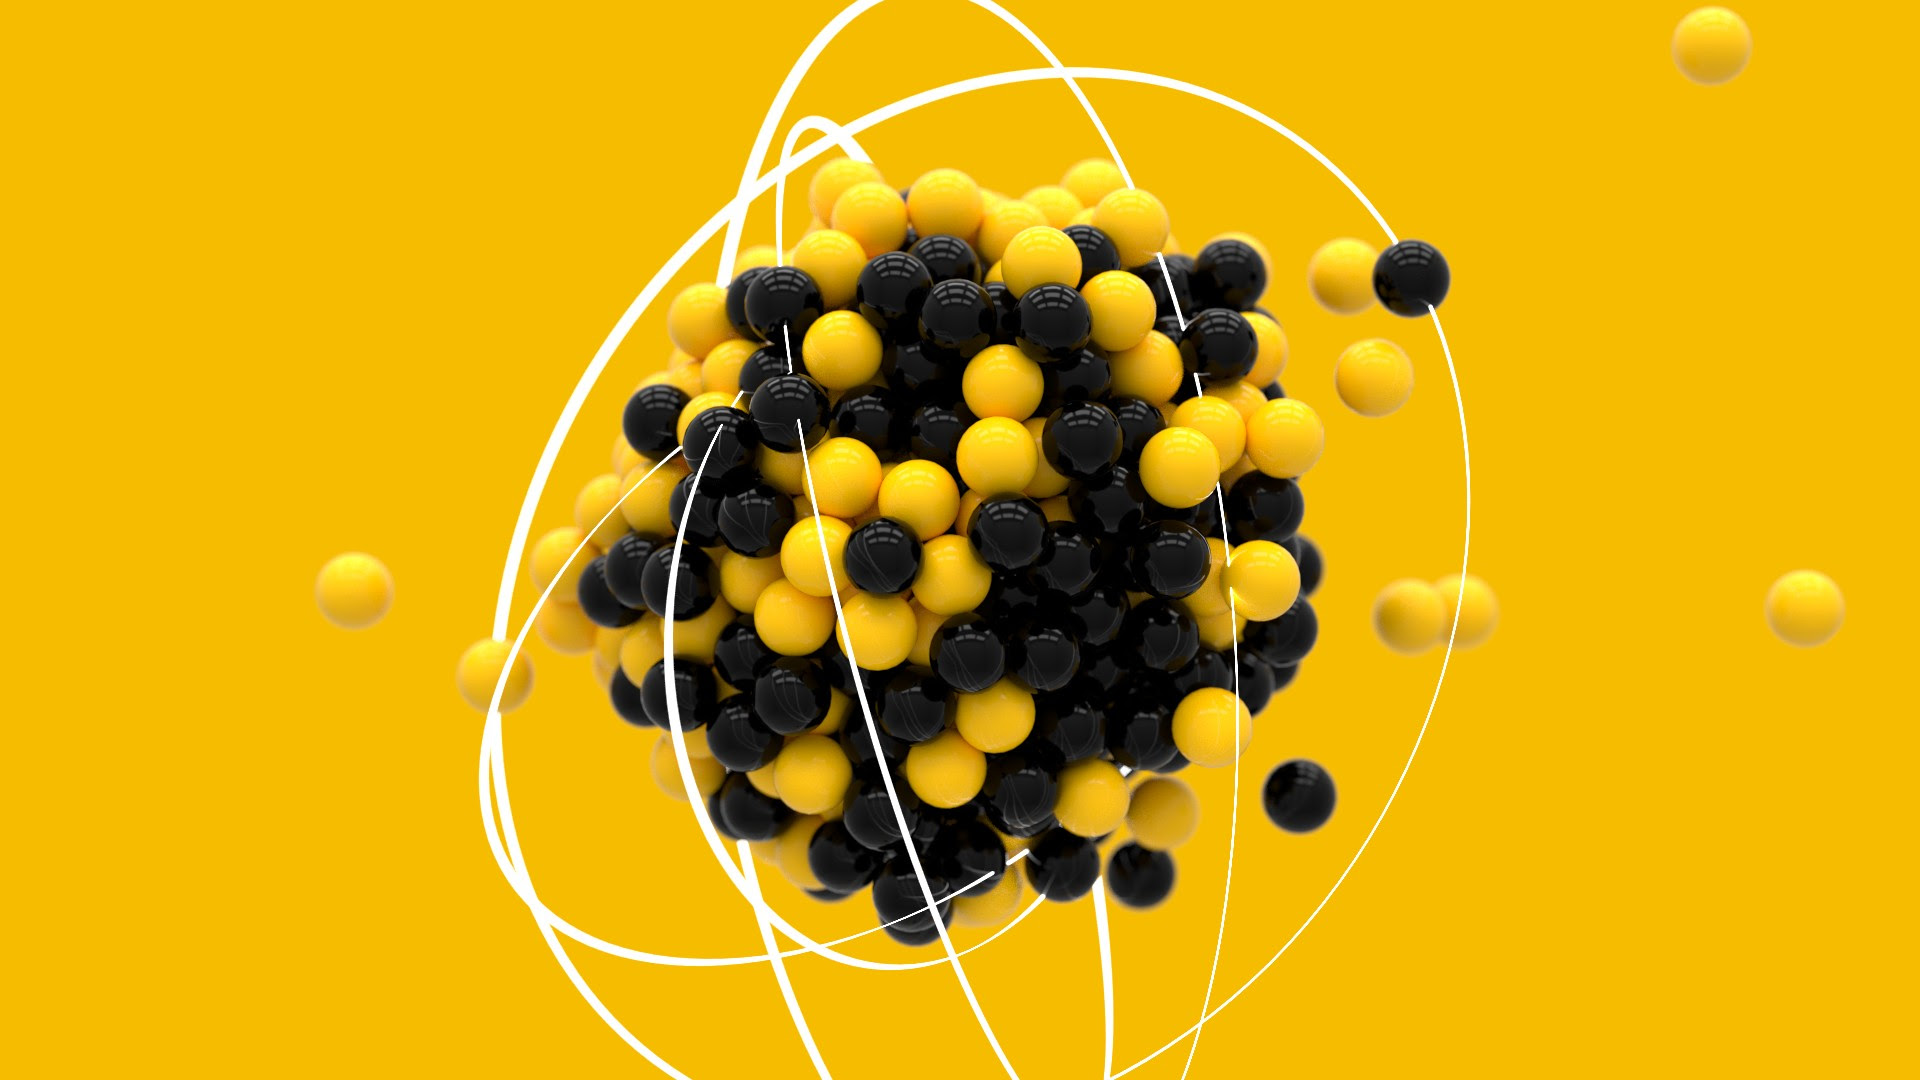 Download 93 Koleksi Wallpaper 3d Yellow Black HD Paling Keren